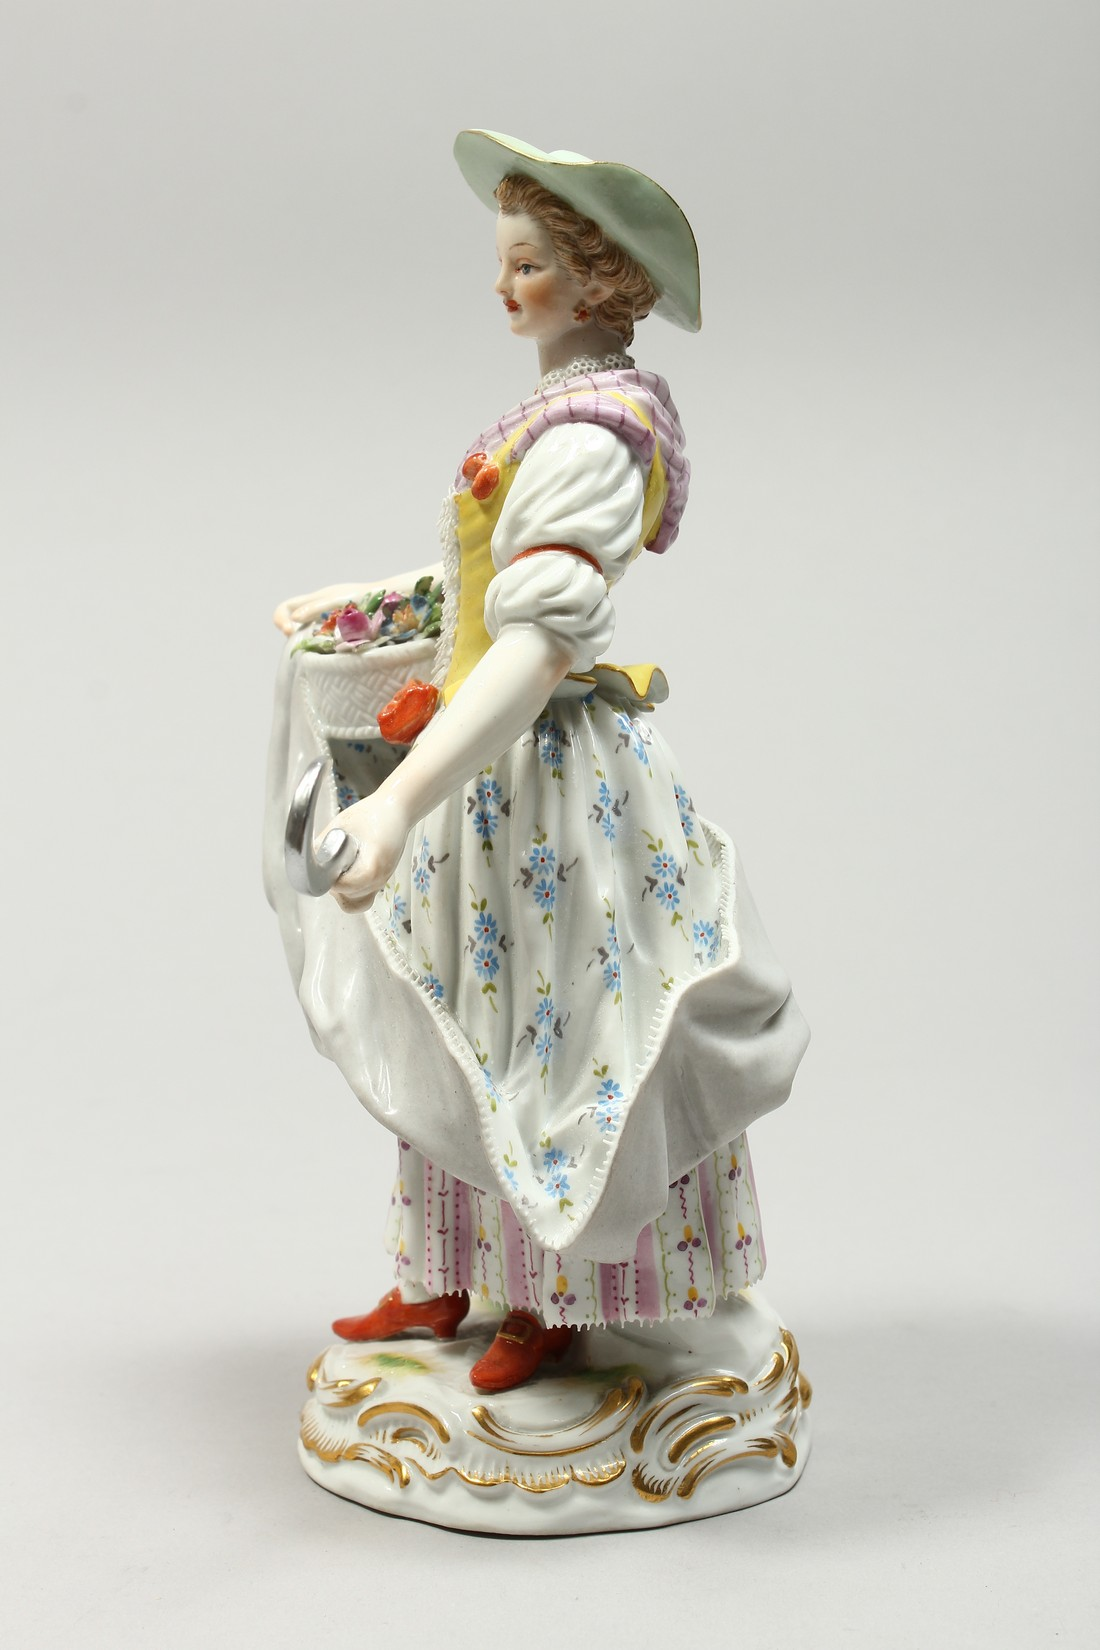 A GOOD MEISSEN PORCELAIN FIGURE OF A GARDENERESE, holding a sickle, carrying a basket of flowers, an - Image 6 of 14